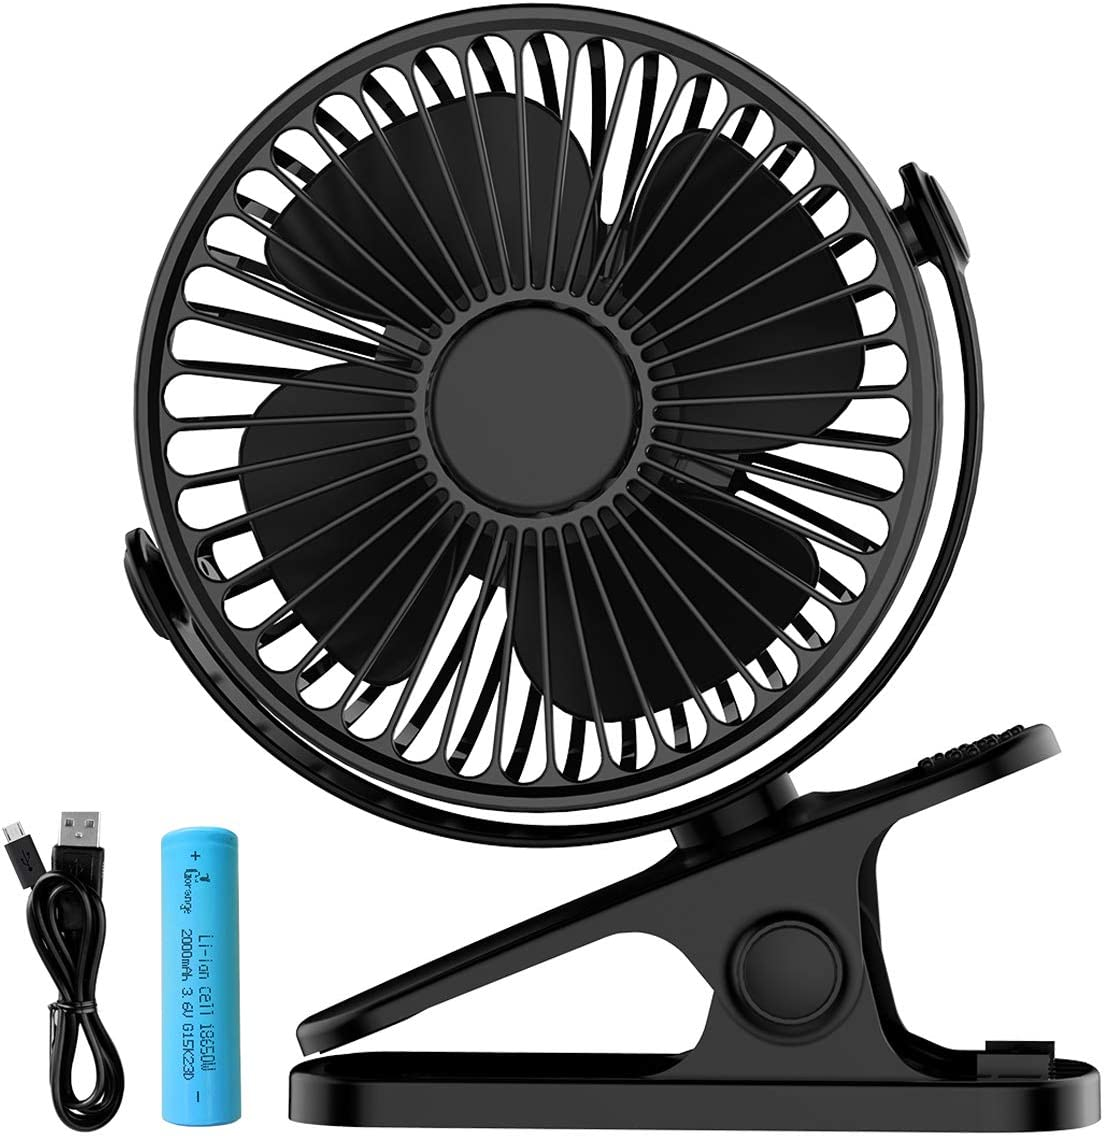 USB Desk Clip on Fan,Mini Portable Personal Fan with Rechargeable Battery,360 Adjustable 3 Speed Desktop Fan Cooling Fan for Baby Stroller Home Office Outdoor Travel